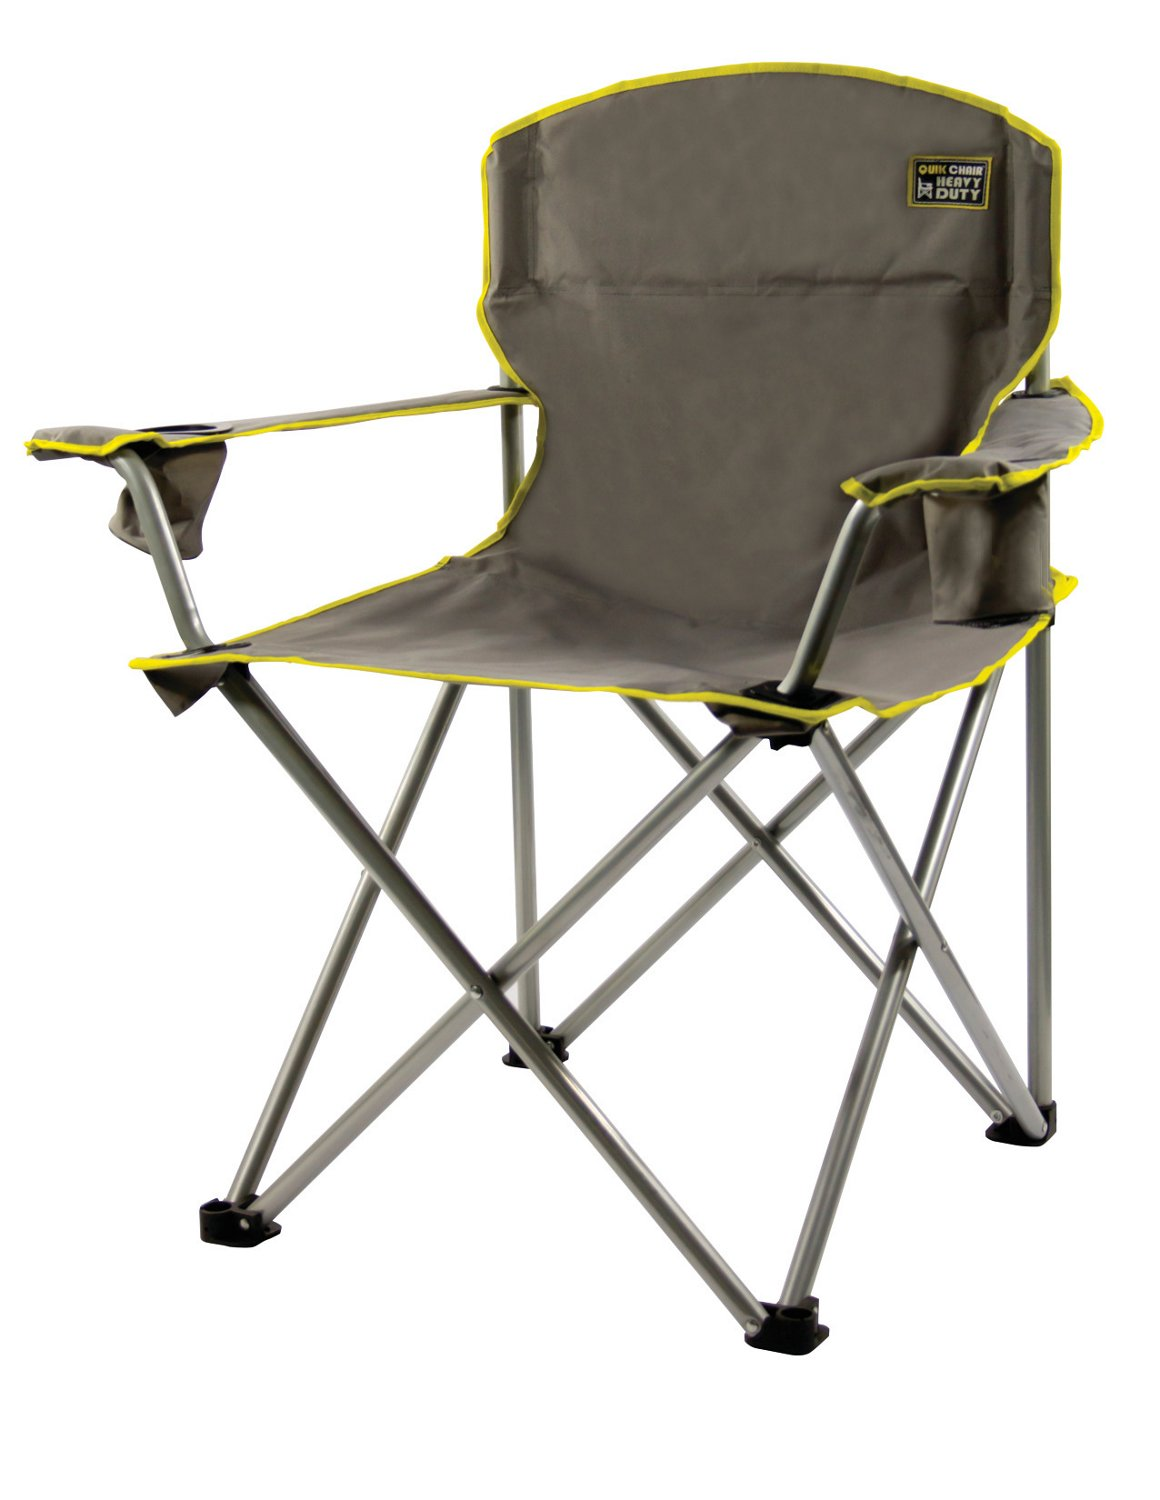 Quik Shade 1 4 Ton Heavy Duty Folding Camping Chair